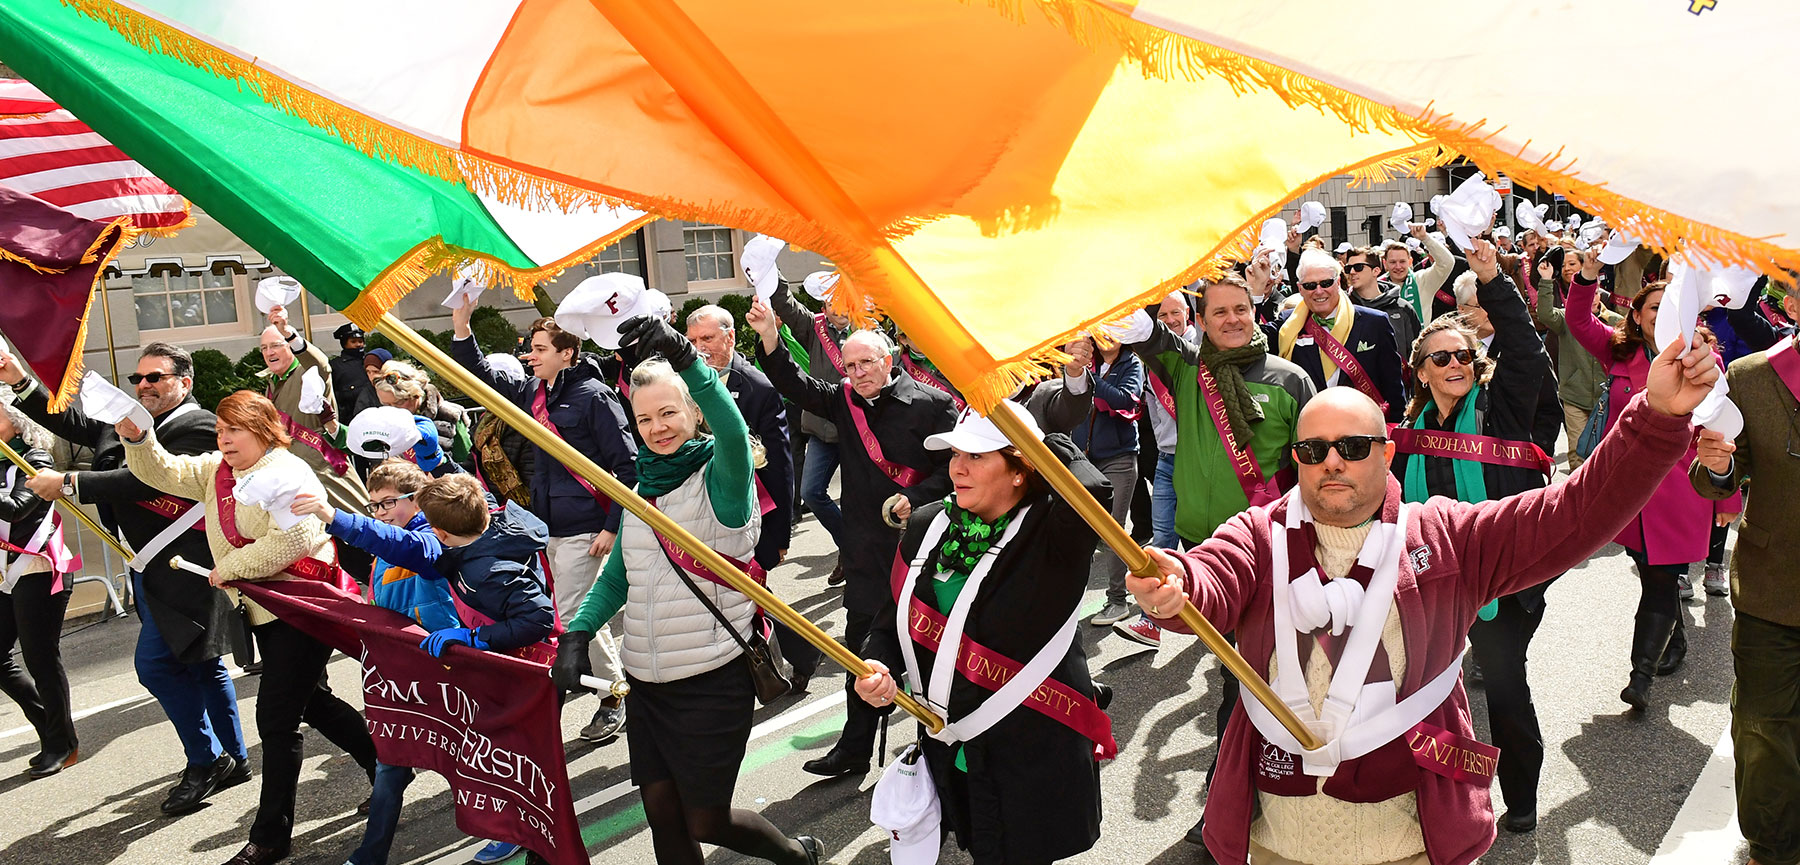 Fordham Marches in St. Patrick's Day Parade